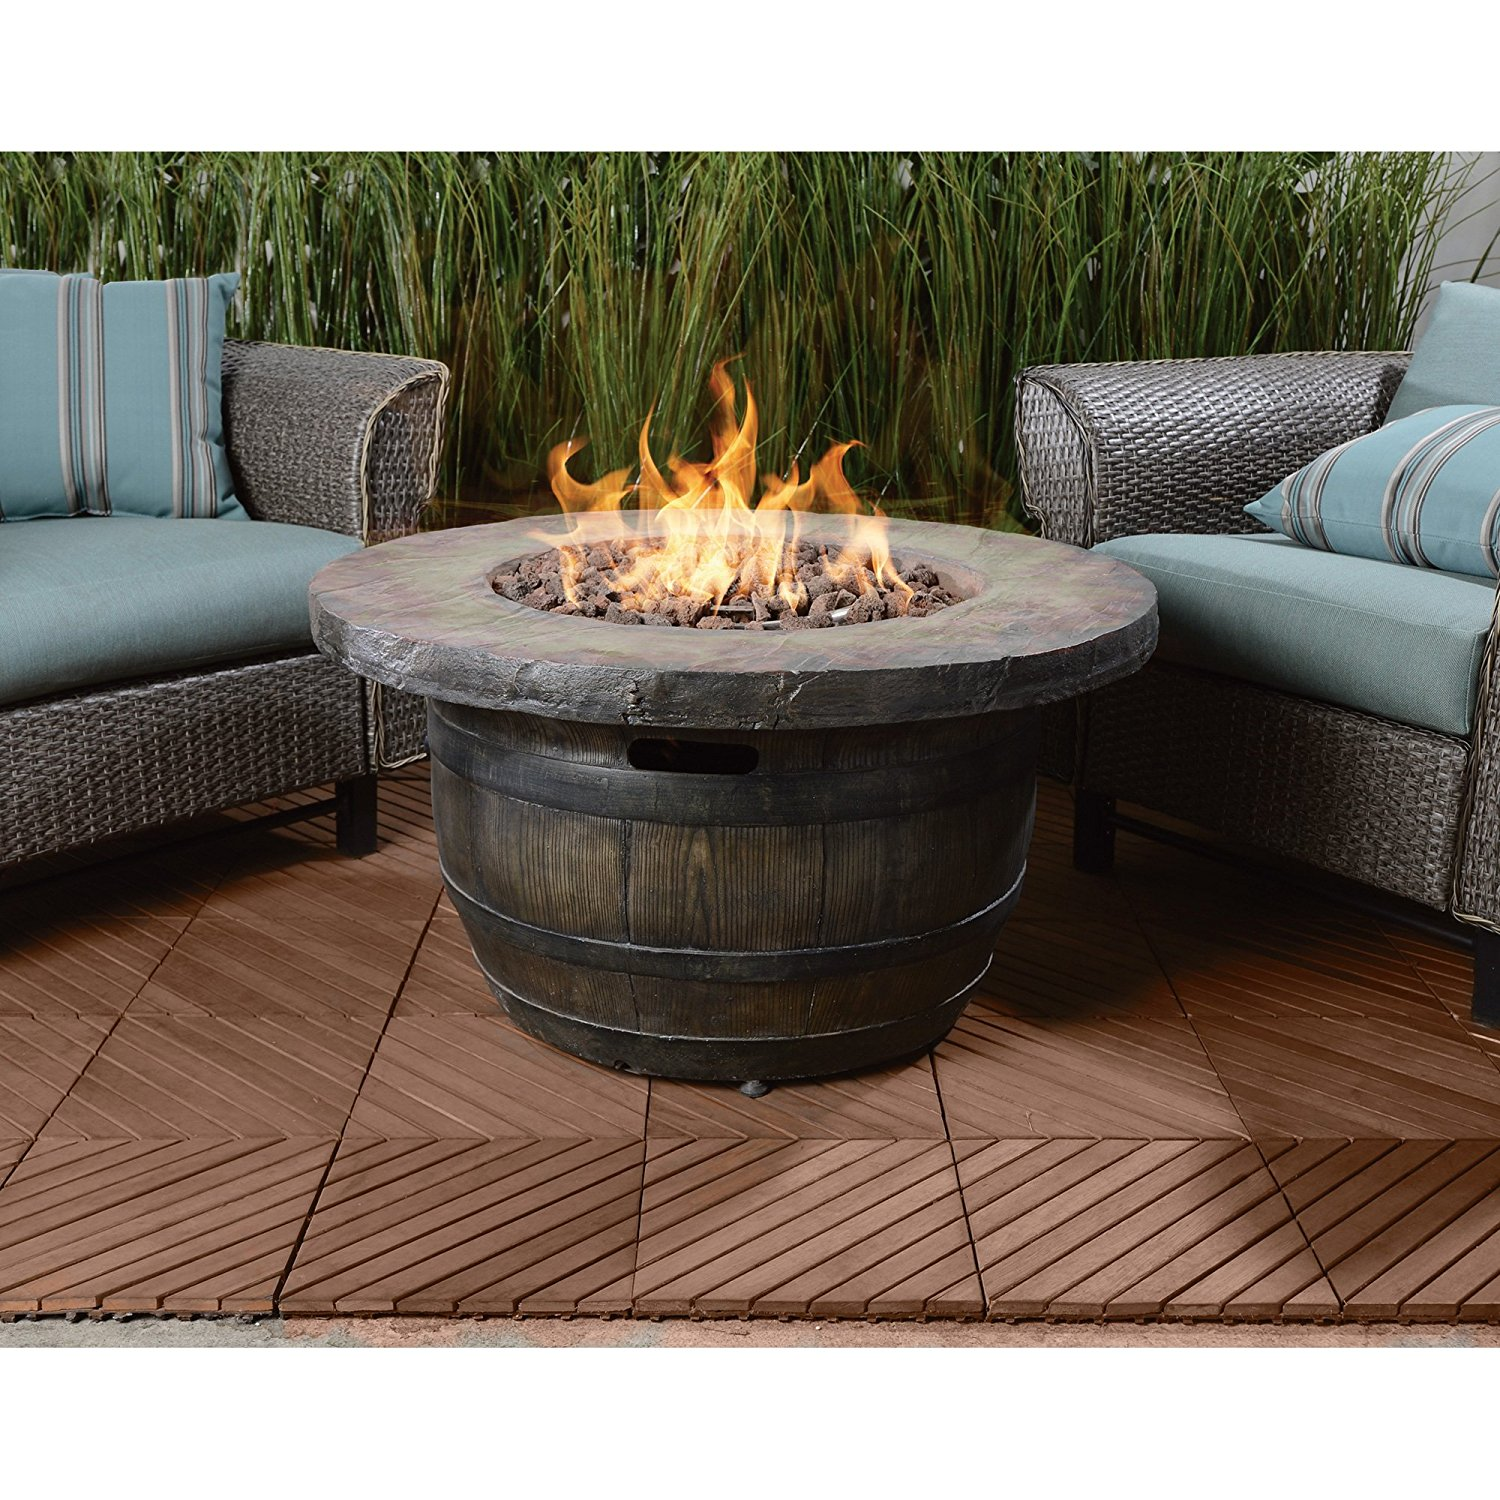 Best Fire Pit Of 2018  Reviews And Analysis By Expert